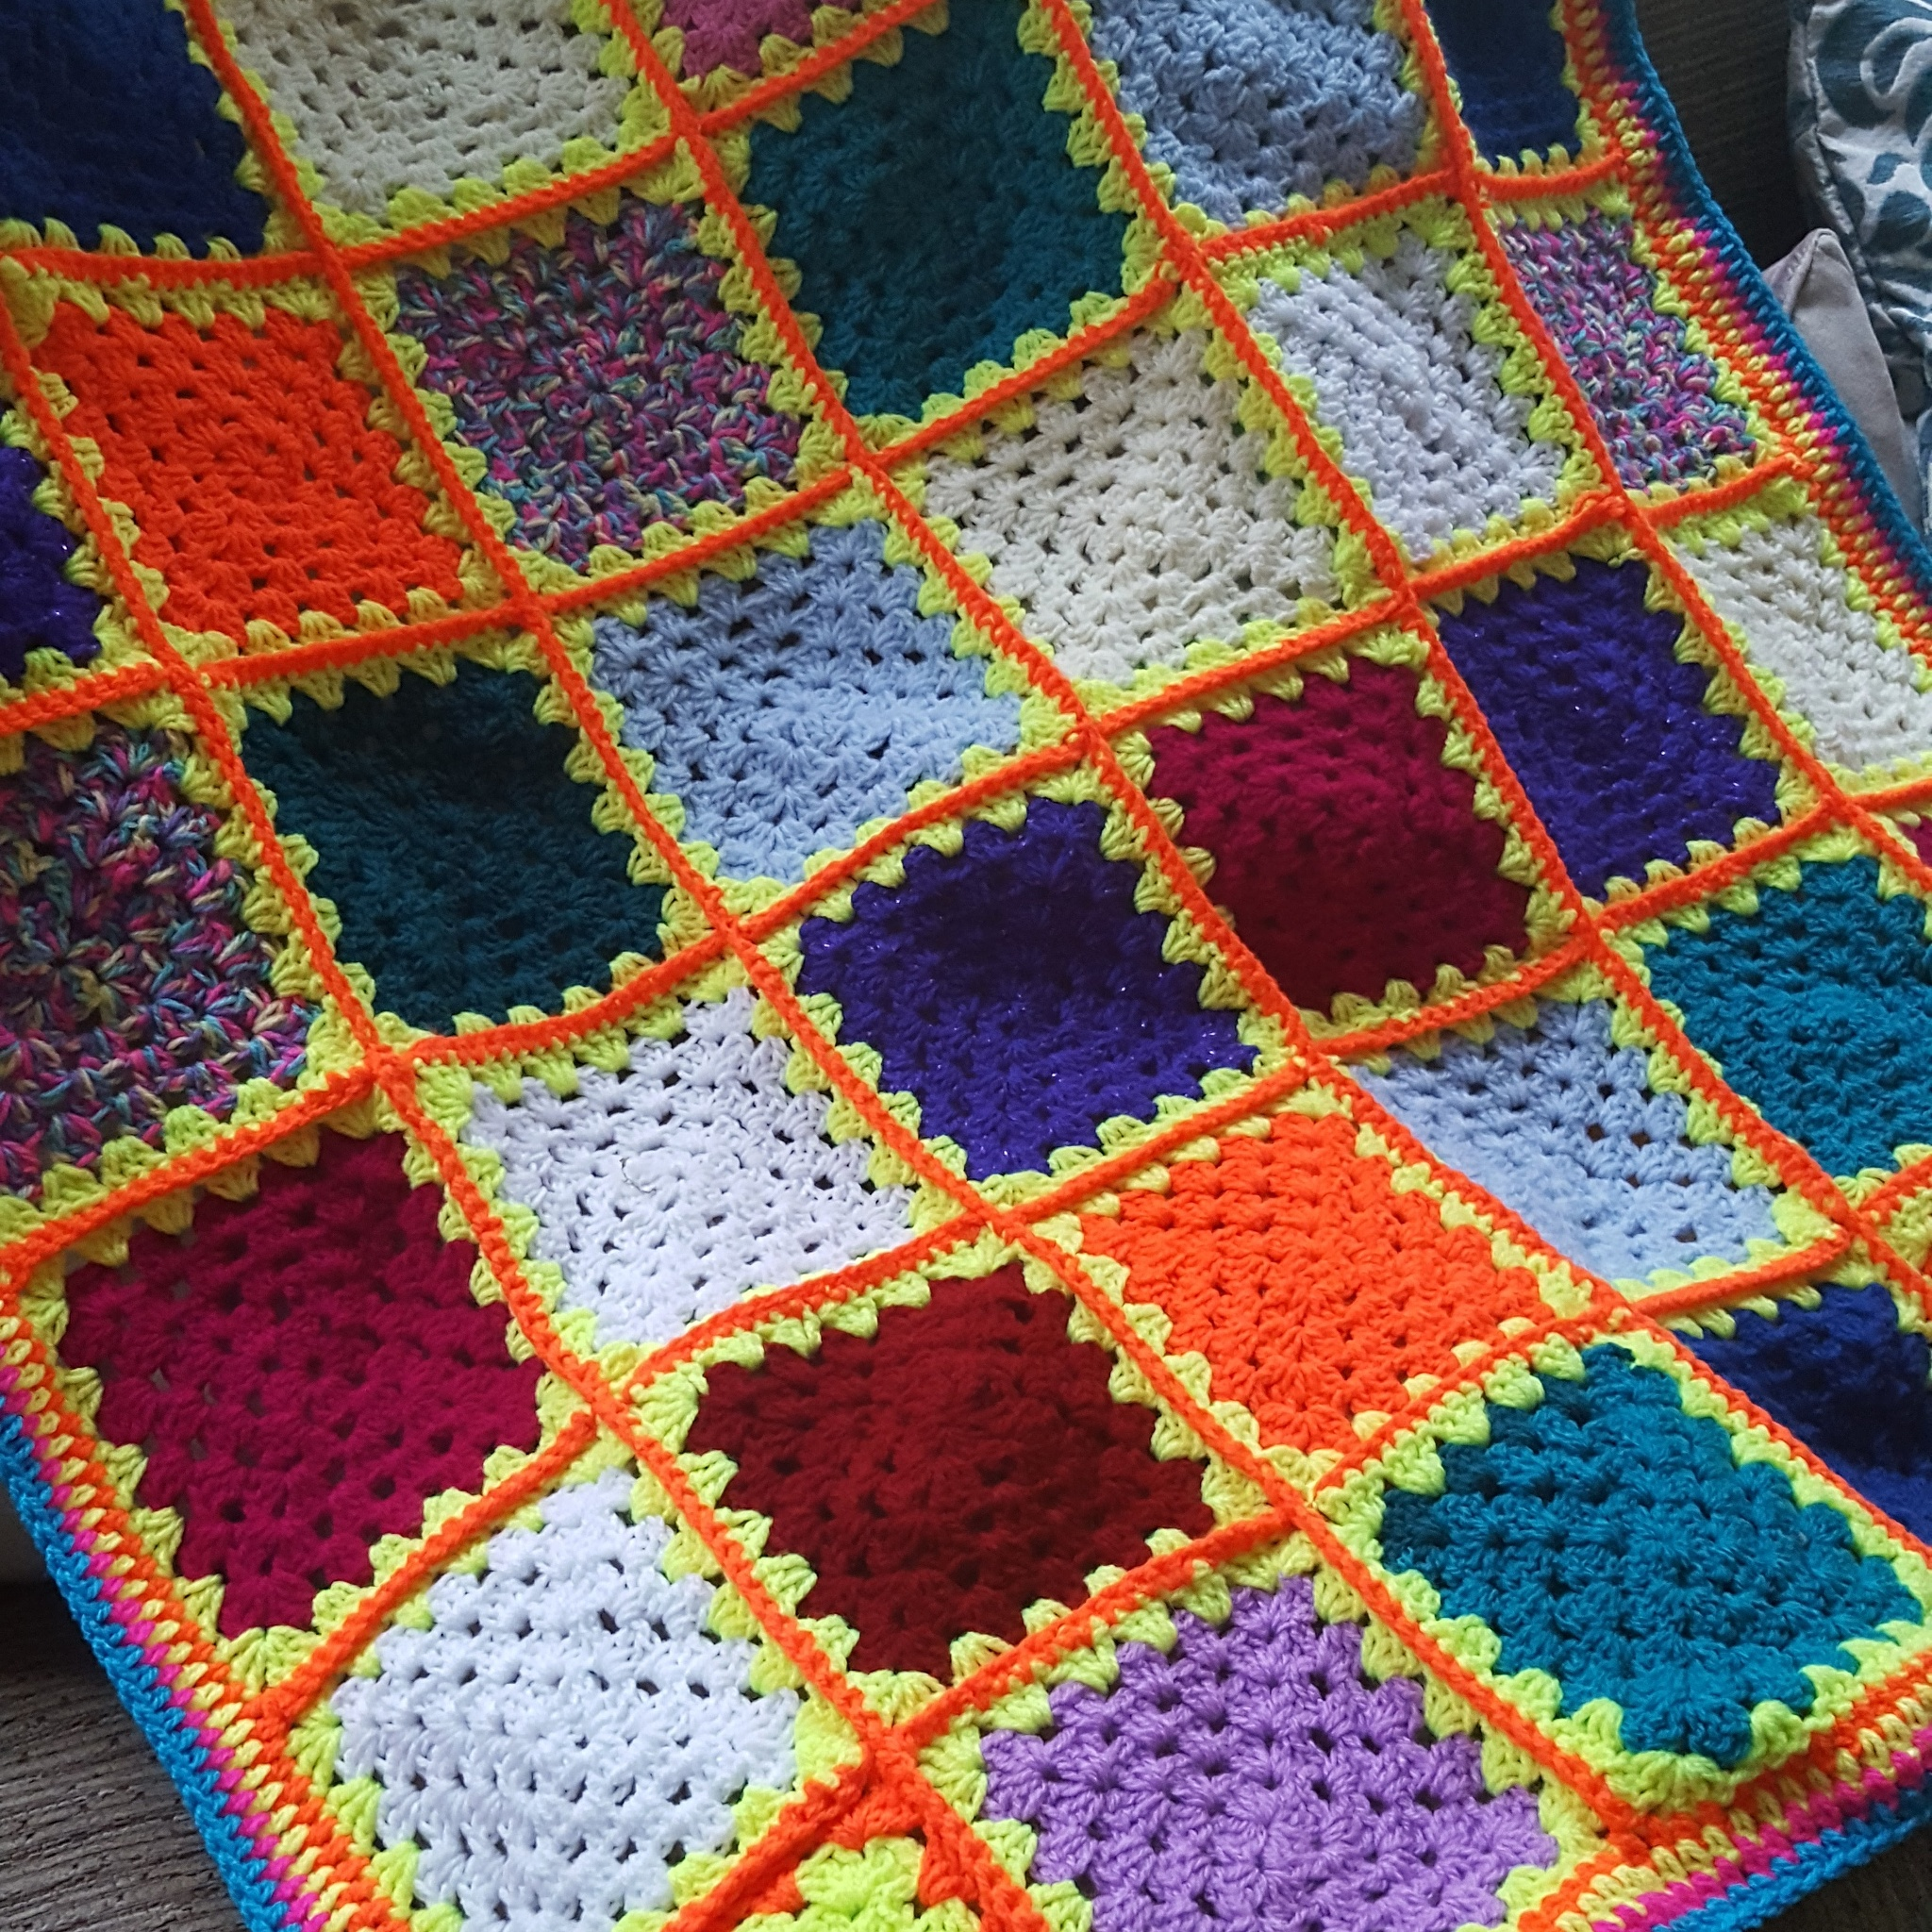 colourful blanket  by tattooogirl